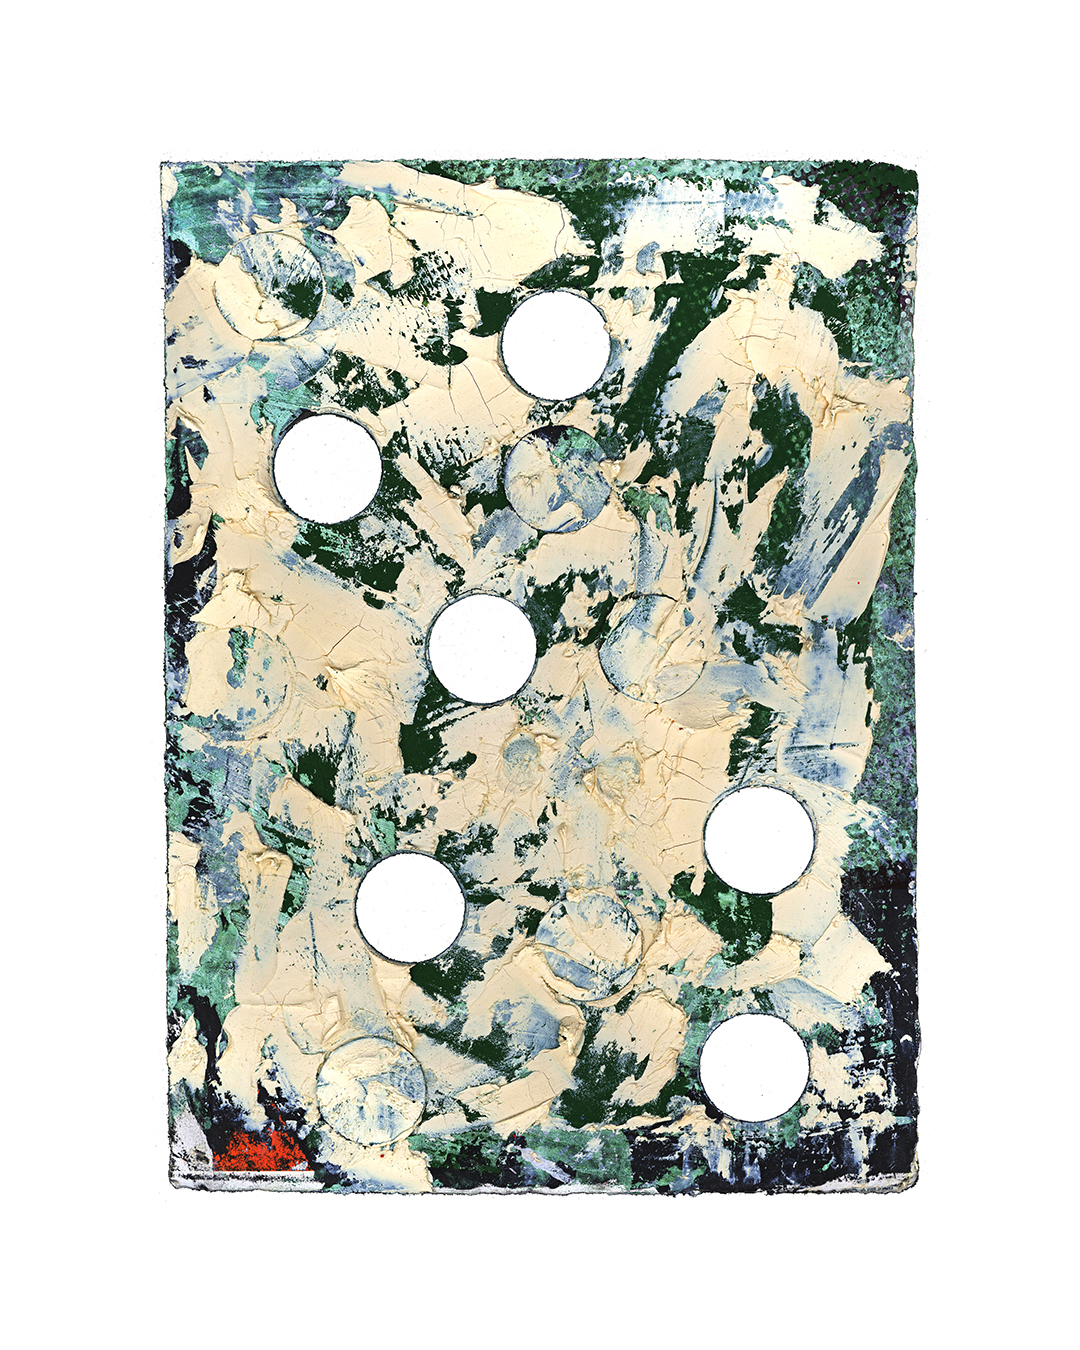 Piet Dieleman, untitled, 2020, painting, tempera, acrylic paint, pigment on laser woodprint, 395 x 280 mm, €930